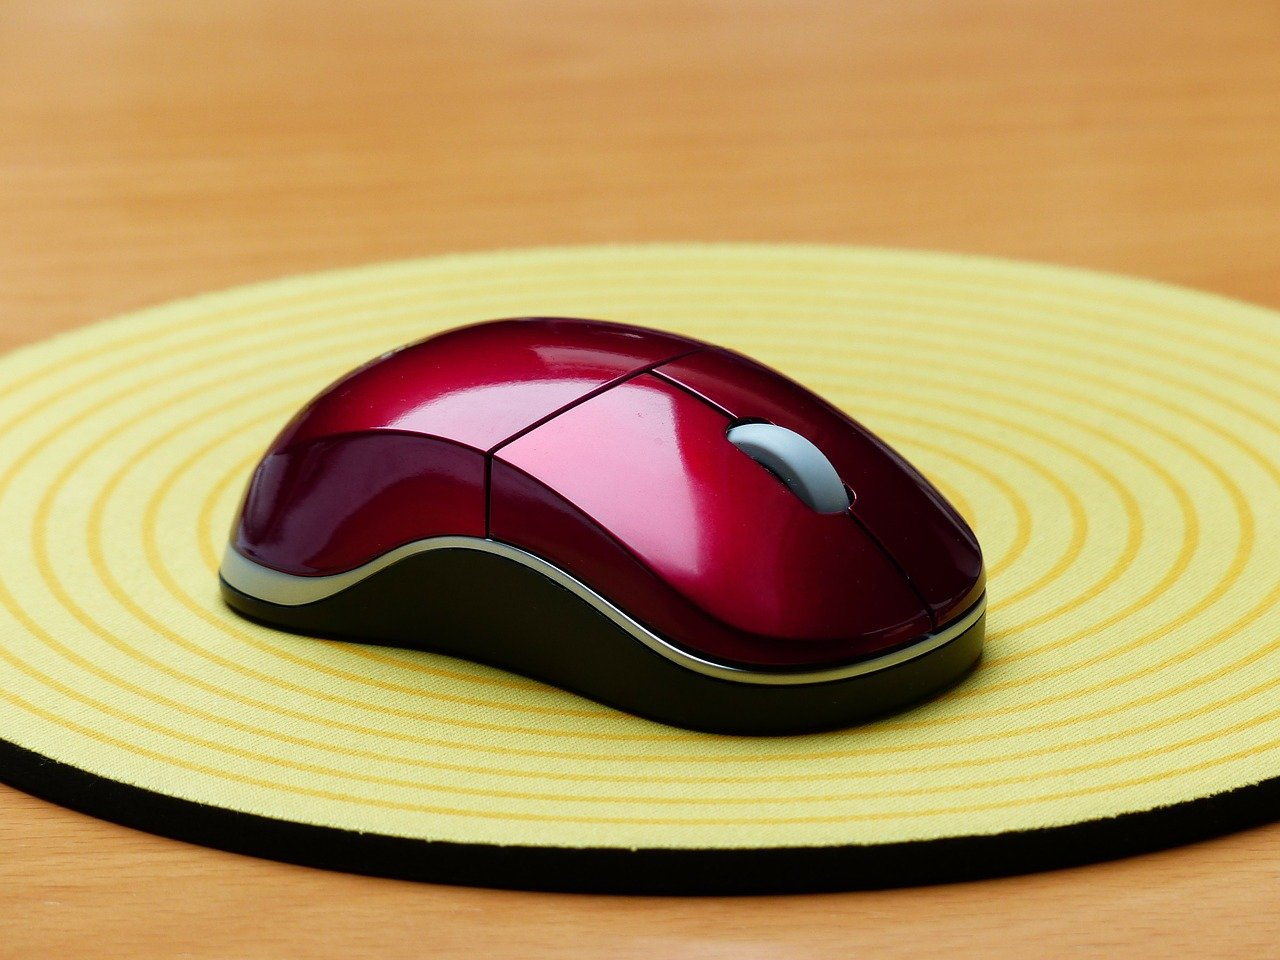 How To Extend The Life Of A Computer Mouse